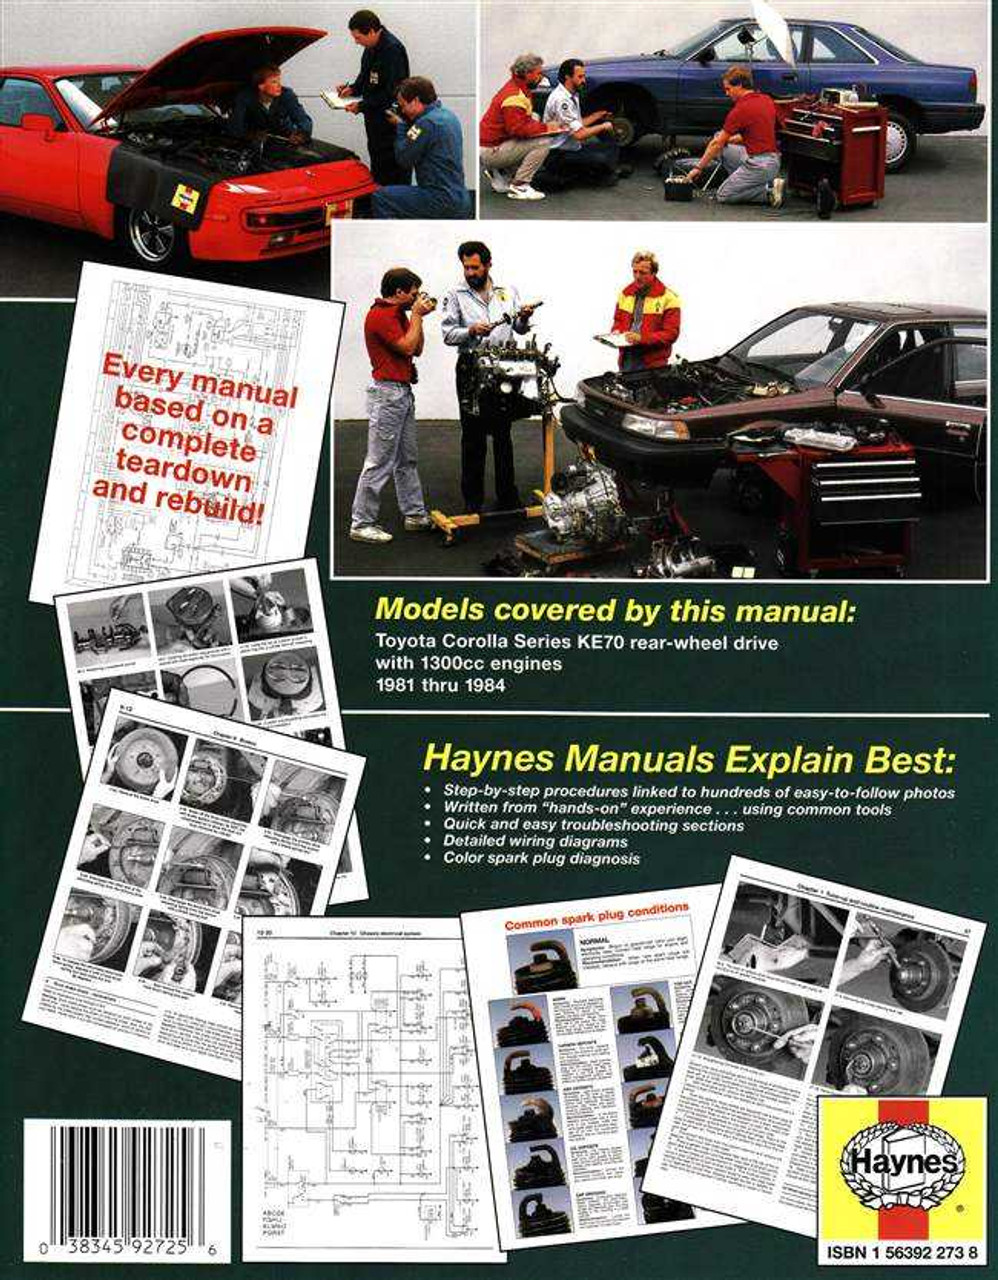 toyota corolla ke70 series rwd 1981 1984 workshop manual rh automotobookshop com au Toyota Corolla 2 Door RWD Toyota Corolla Toy